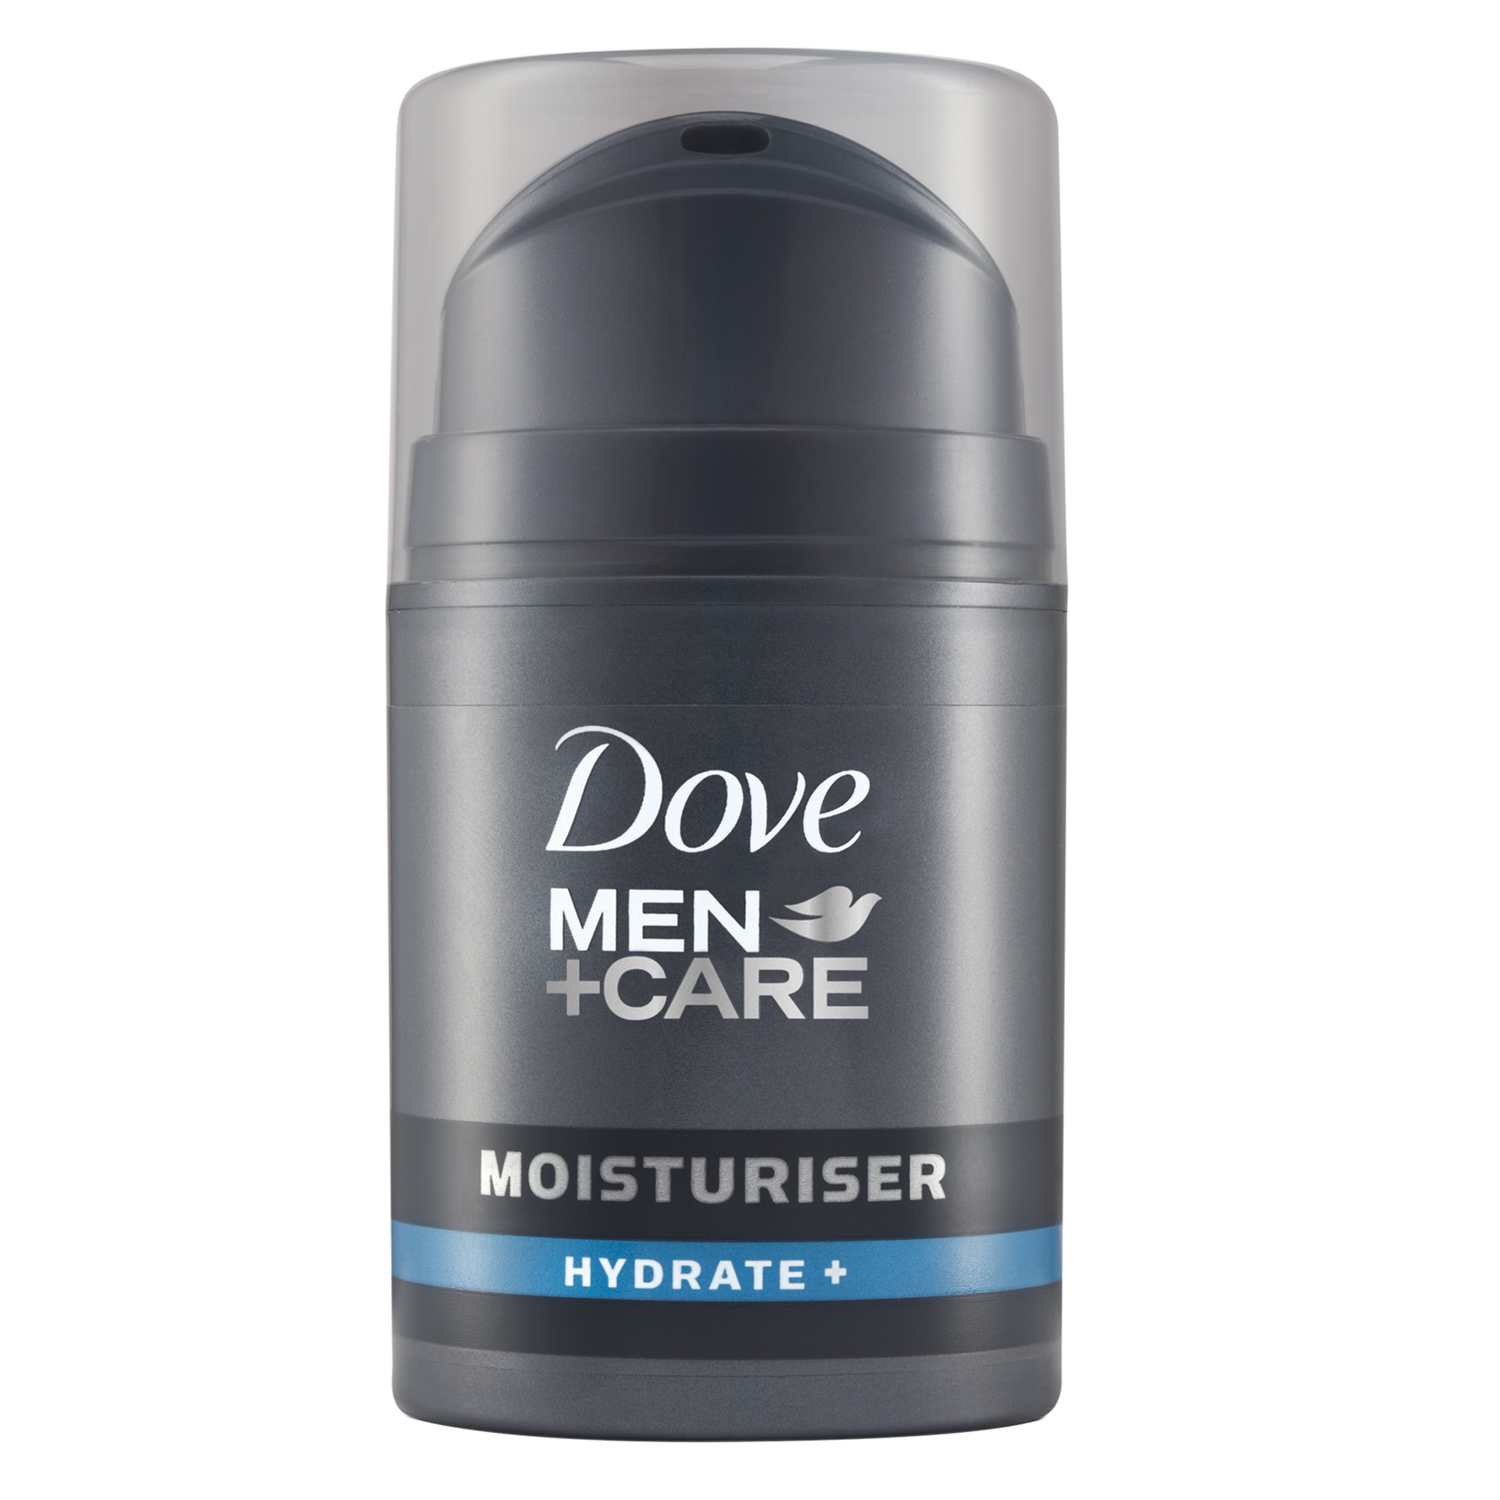 Dove Men Care Hydrate Moisturiser